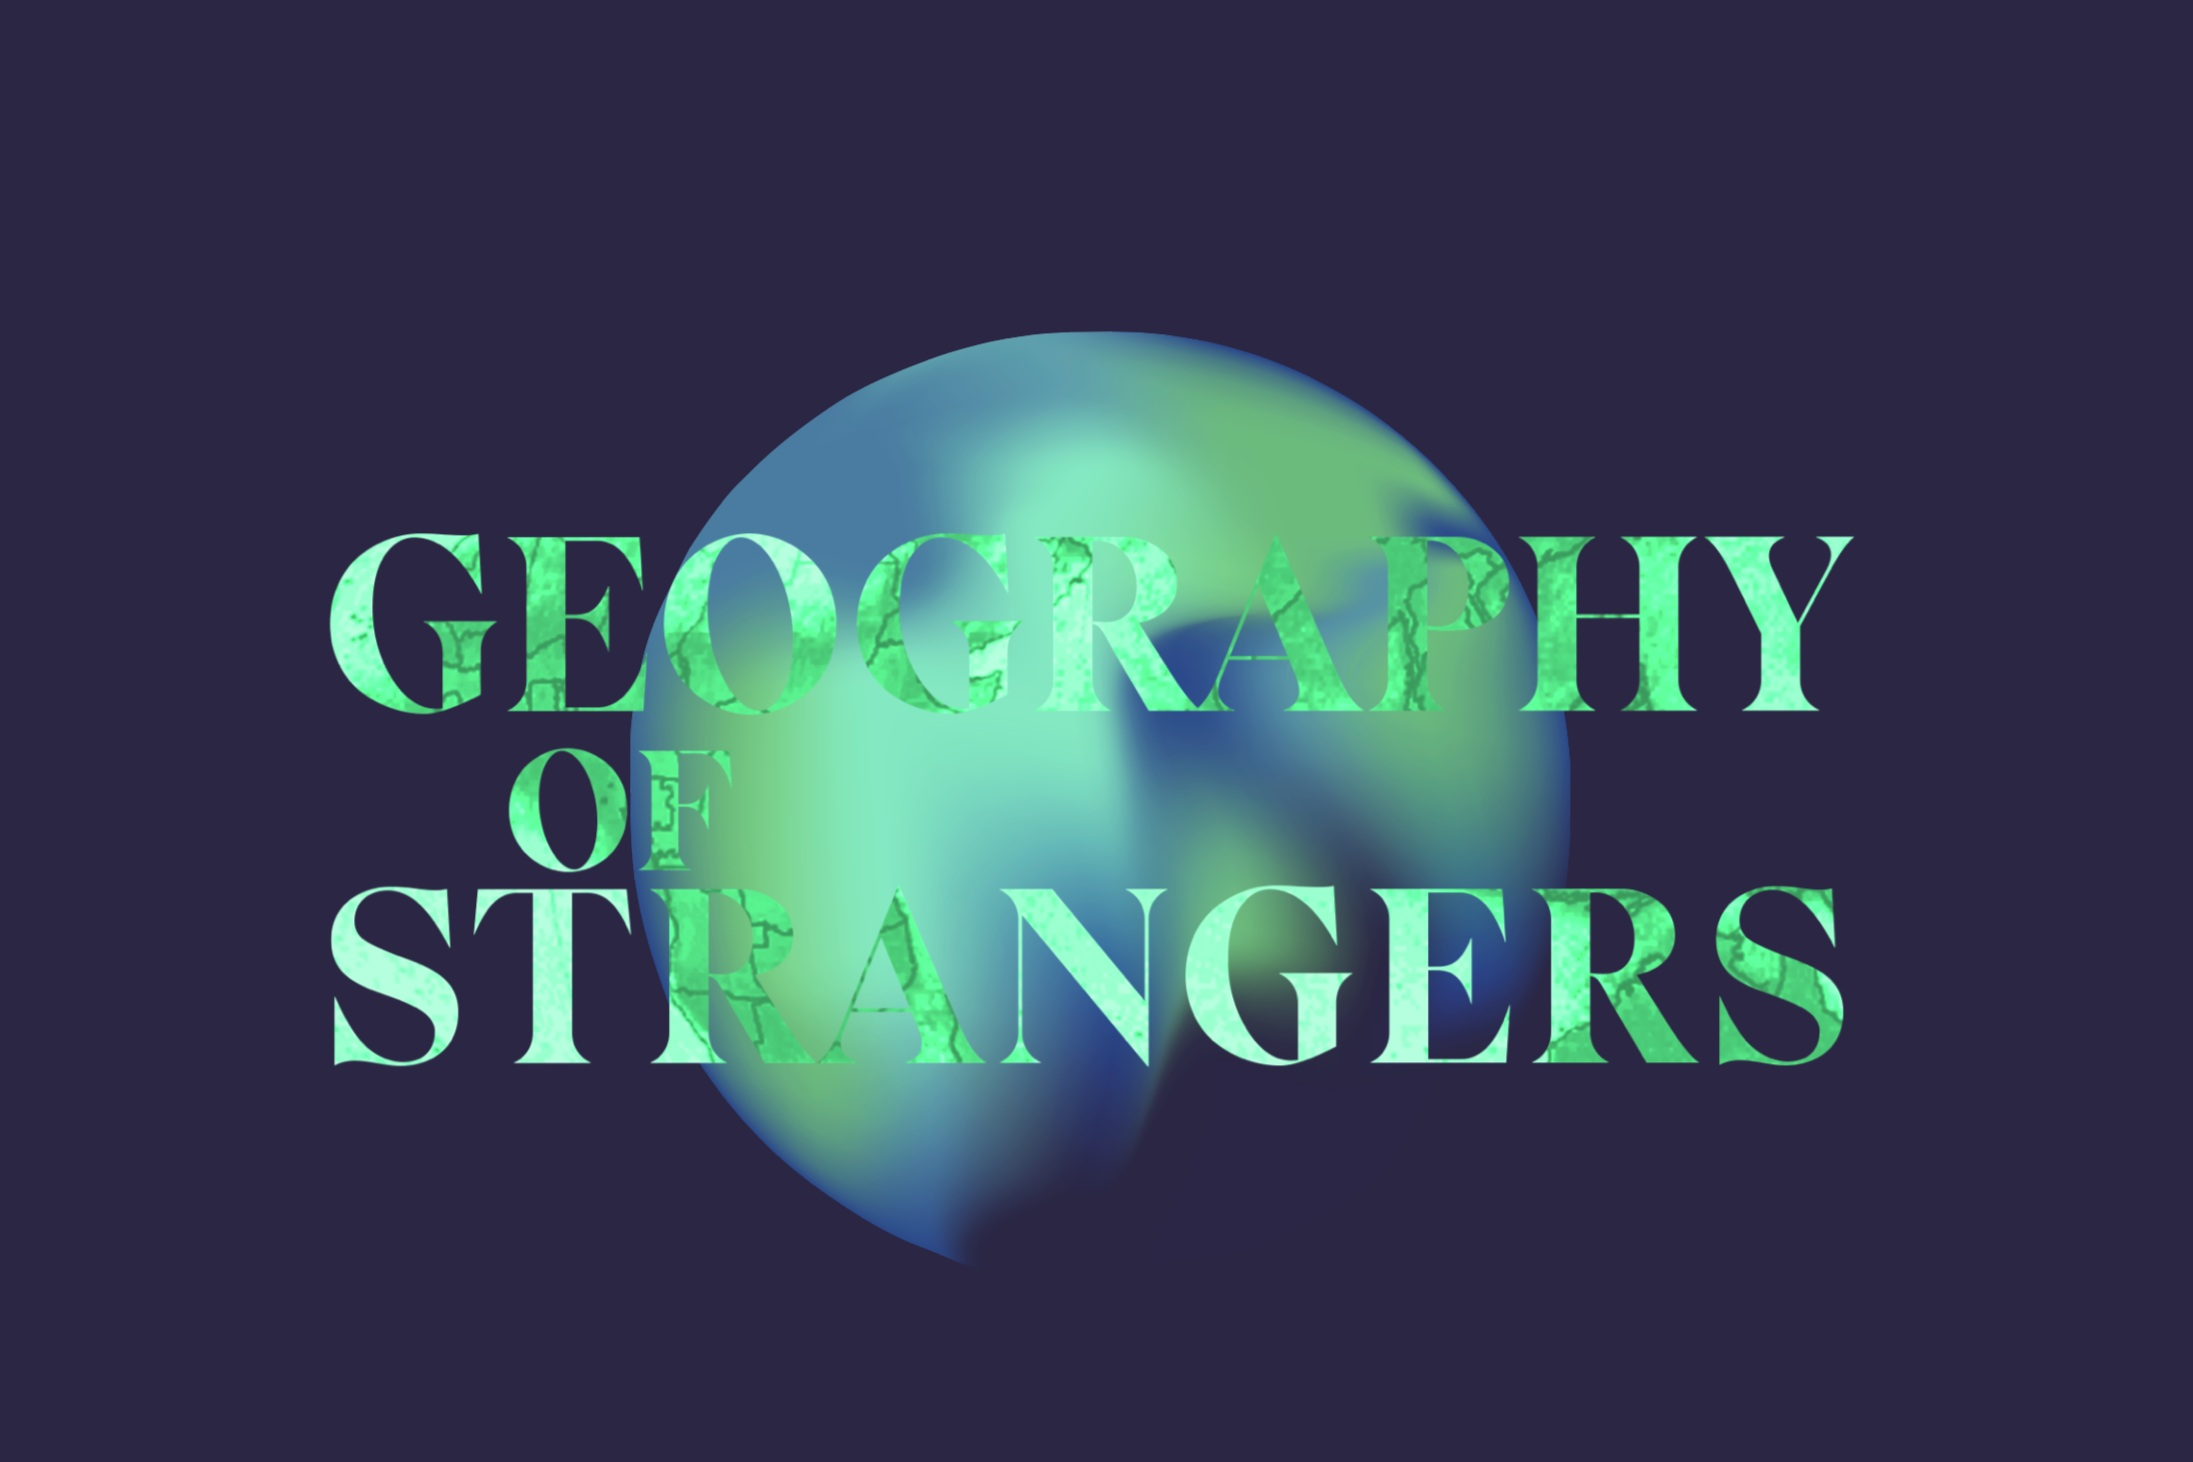 Geography of Strangers is a travel card game designed to make us open and ready to meet new people while traveling. The game was built after months of research for my Independent Design Research Studio at Parsons.